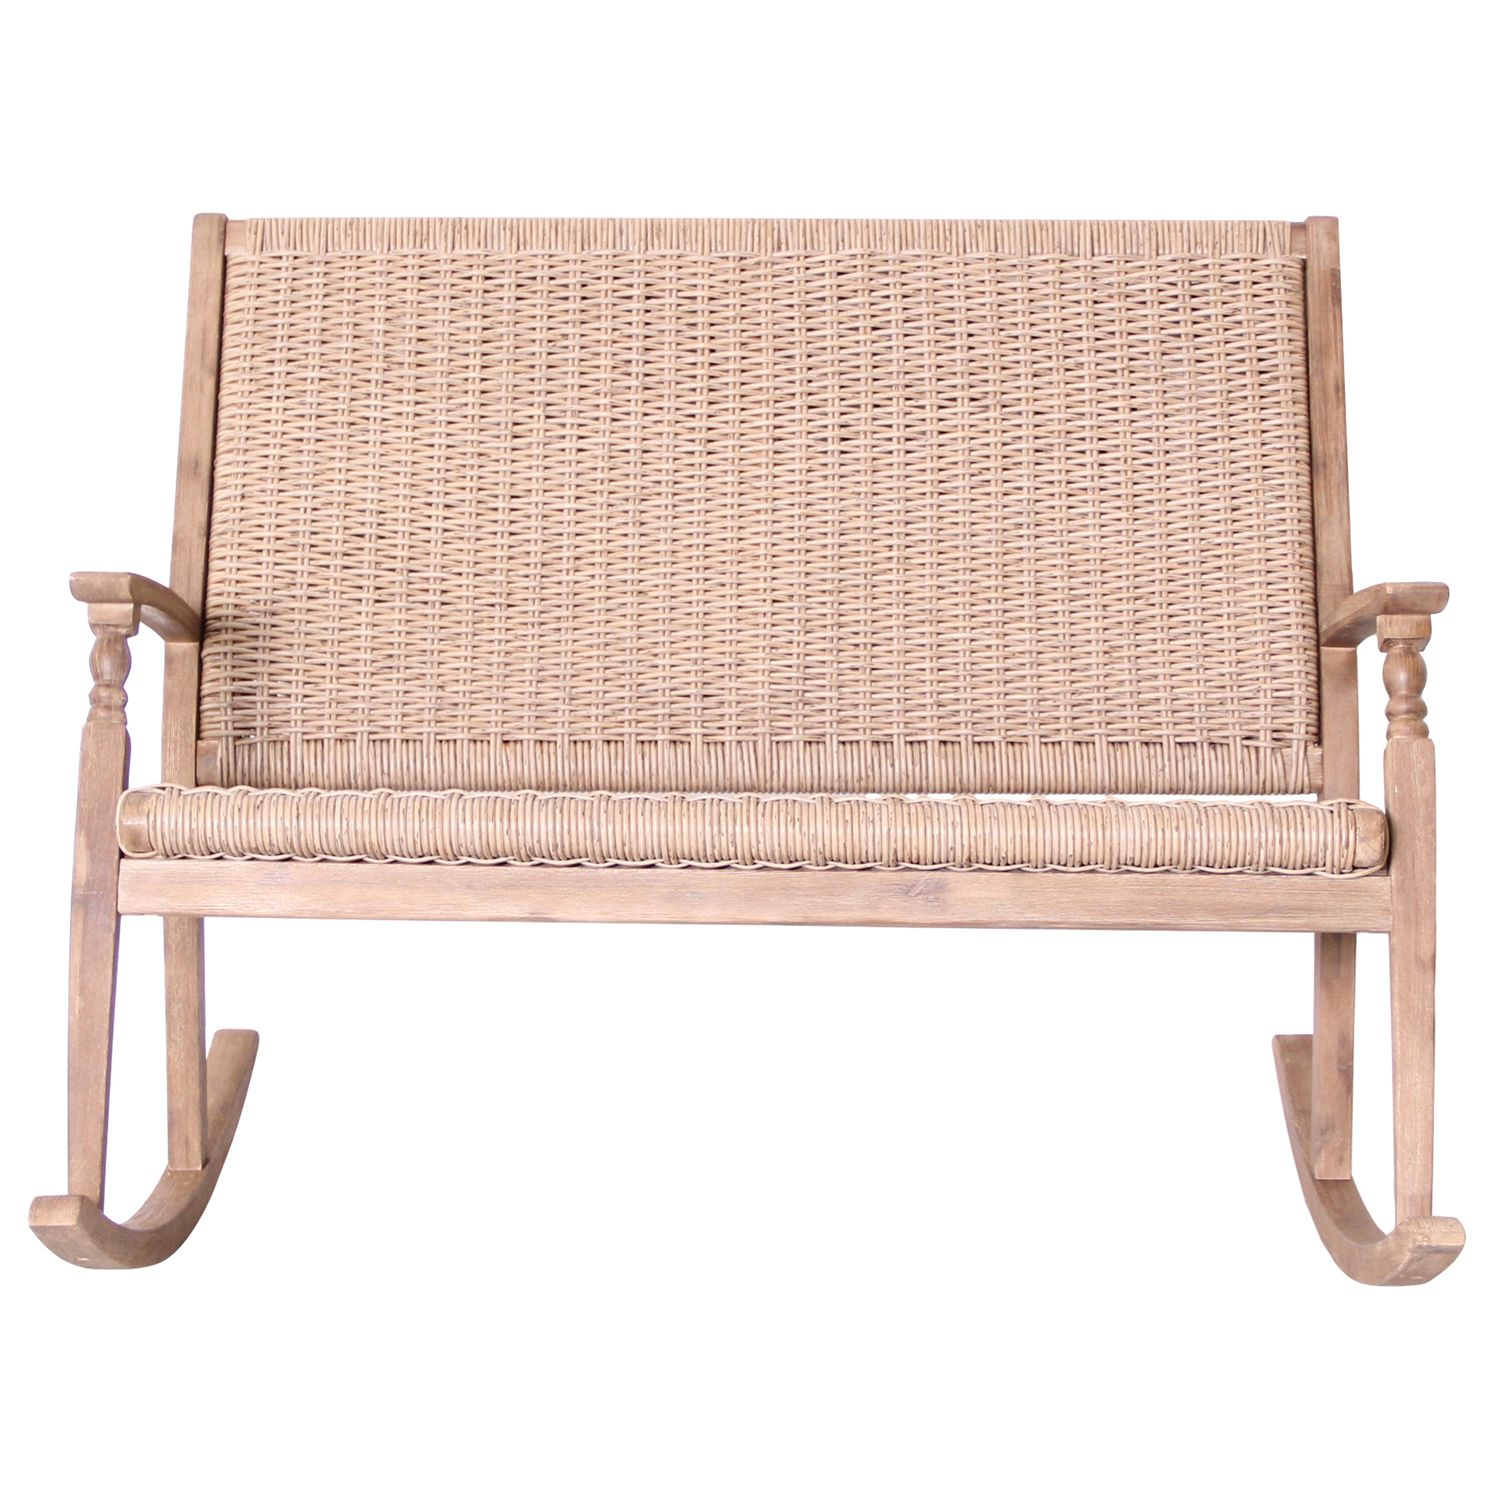 LG Outdoor LG Outdoor Hanoi Wood & Weave 2-Seat Rocking Bench, FSC-certified (Acacia)